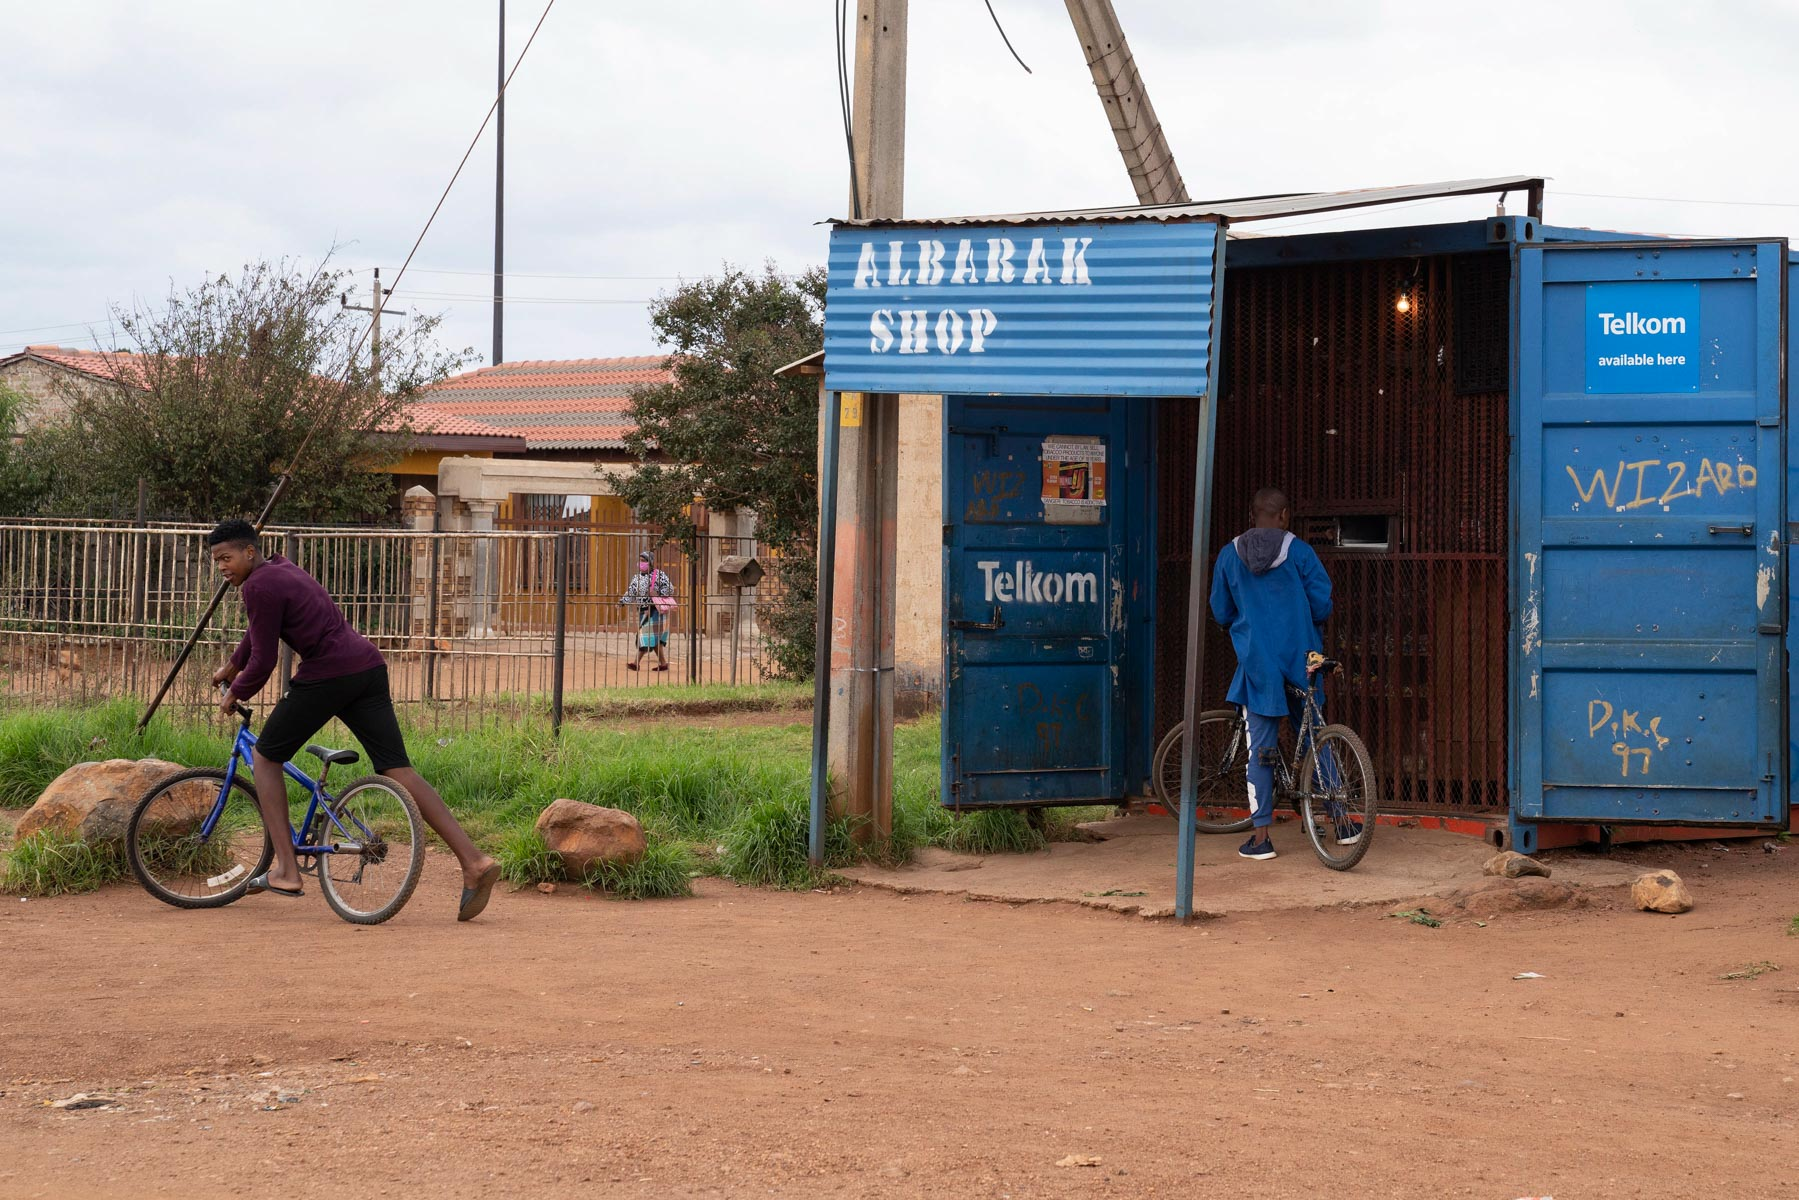 9 April 2020: Young boys cycle to the spaza shop in Sebokeng to buy supplies. (Photograph by Ihsaan Haffejee)